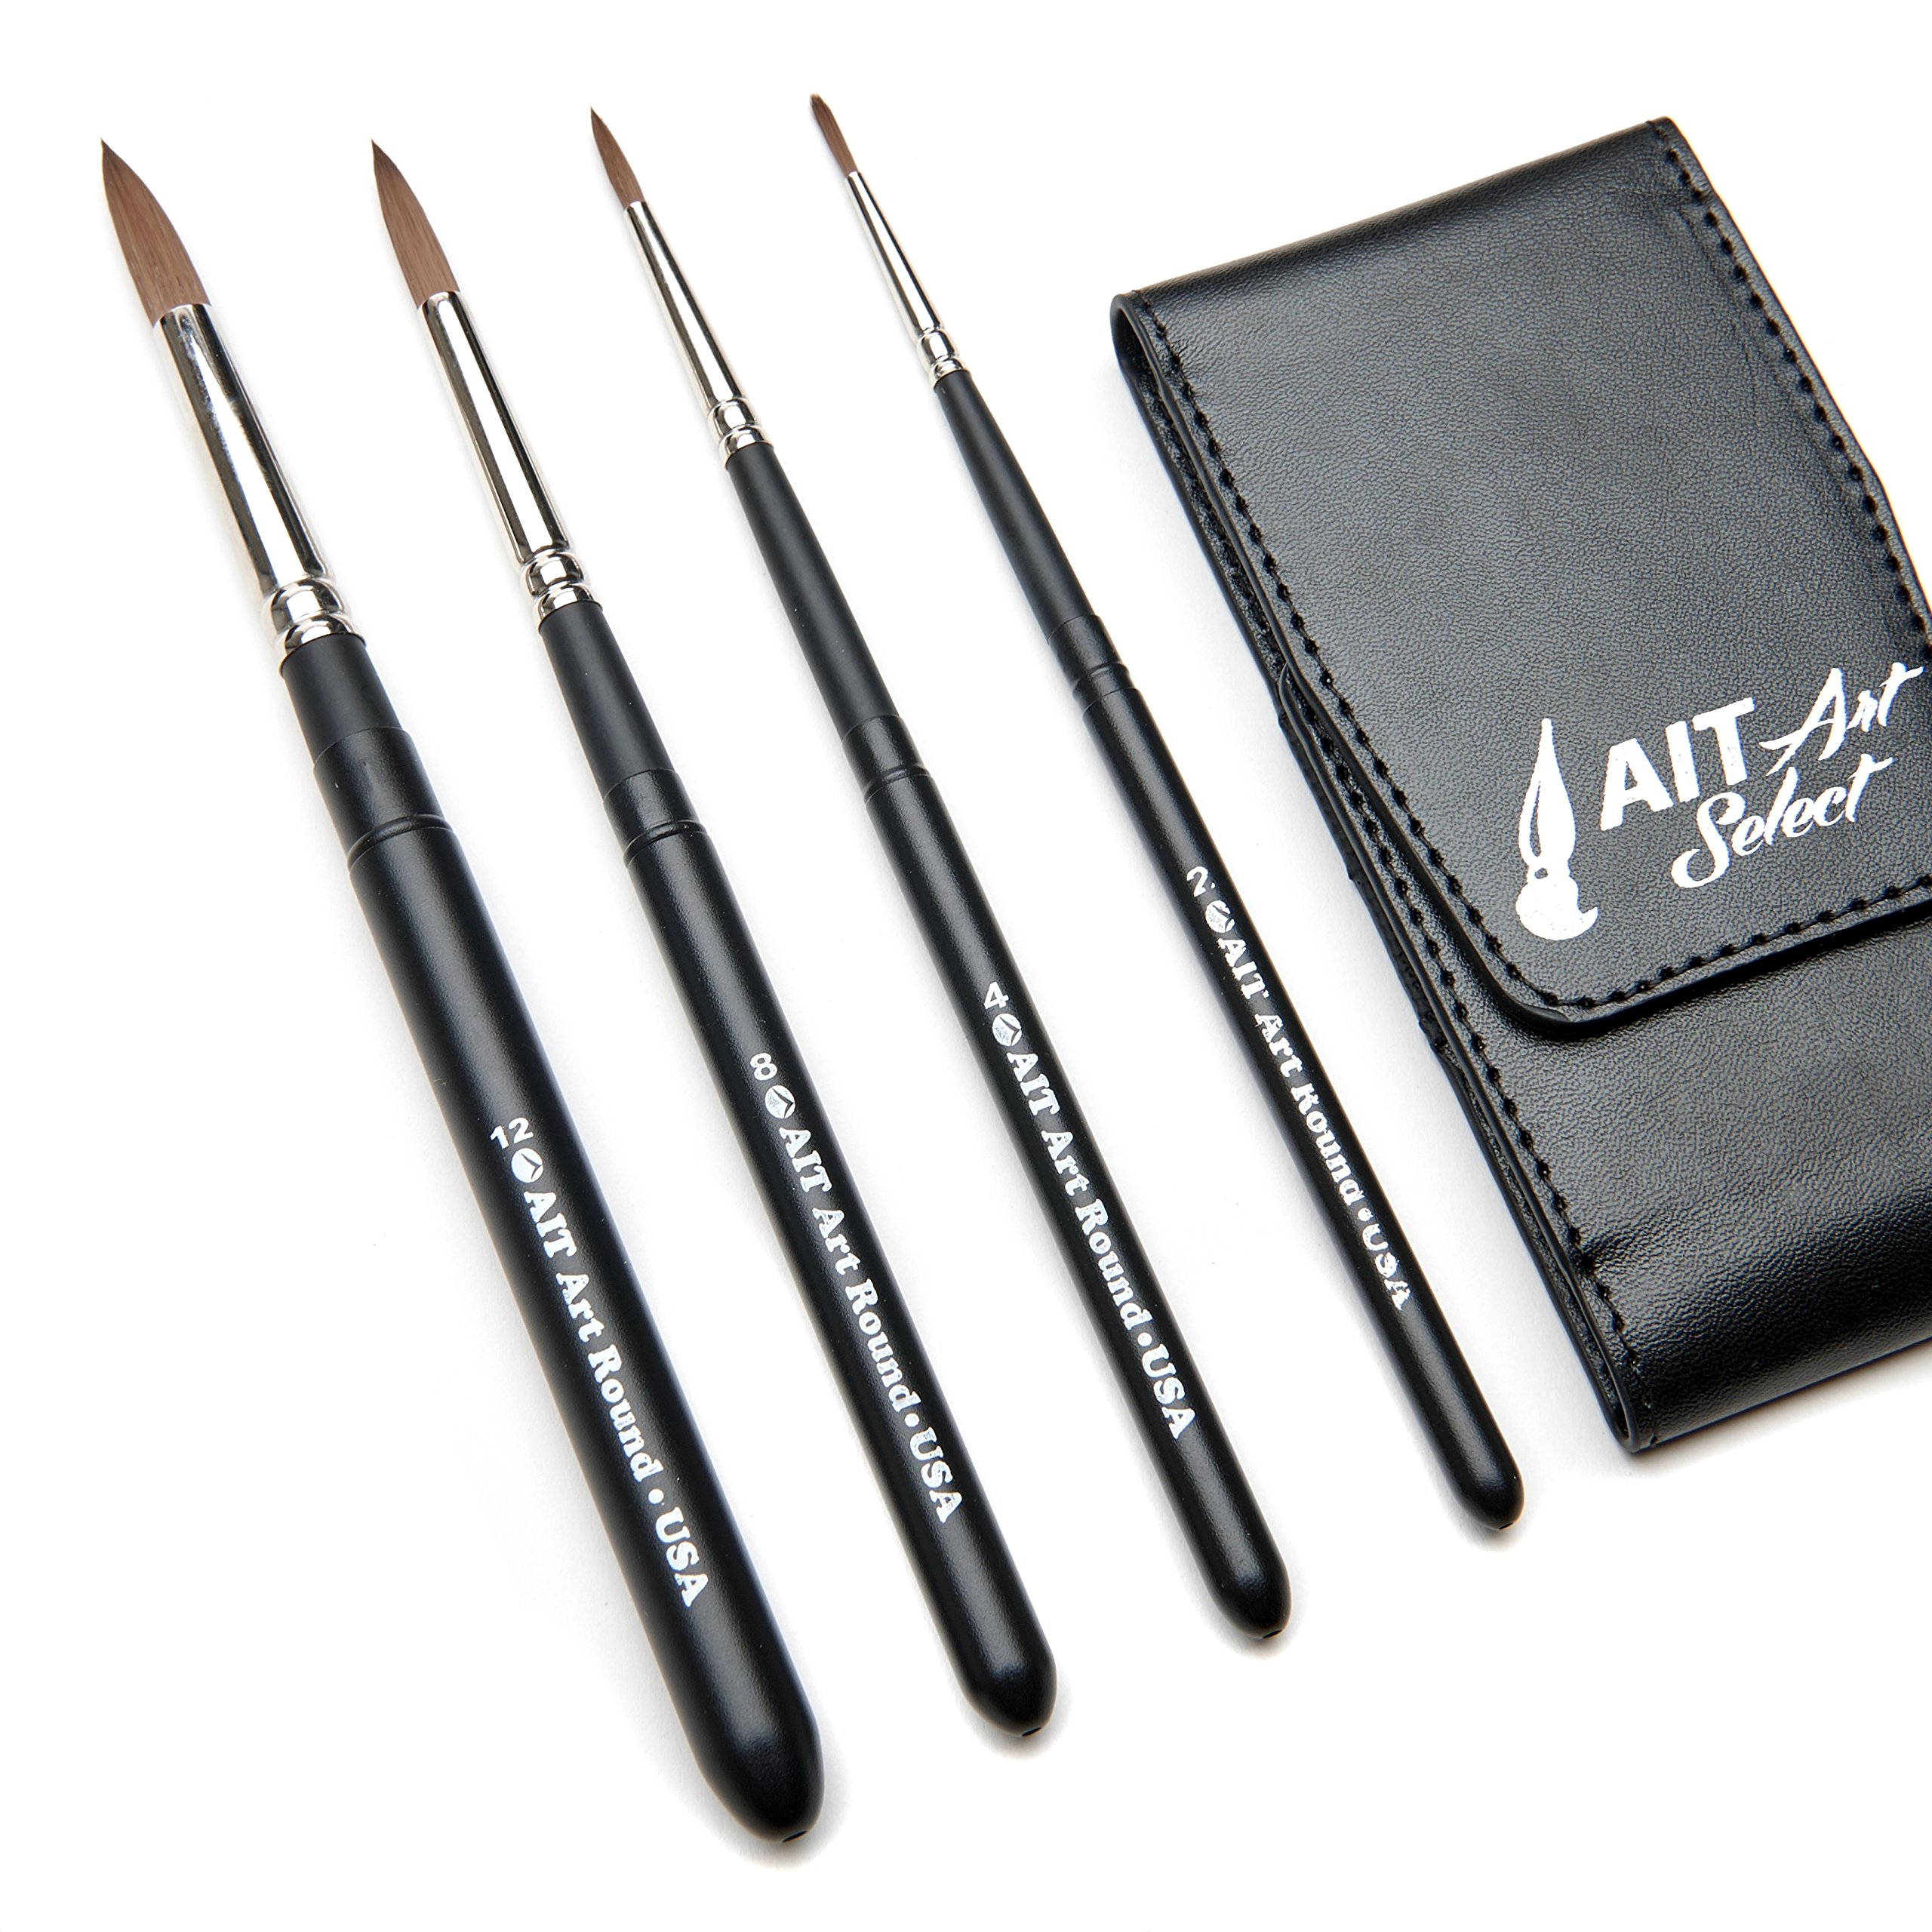 AIT Art Select Paint Brushes - Set of 4 Synthetic Sable Brushes - Handmade in USA - Compact Travel Set by AIT Products